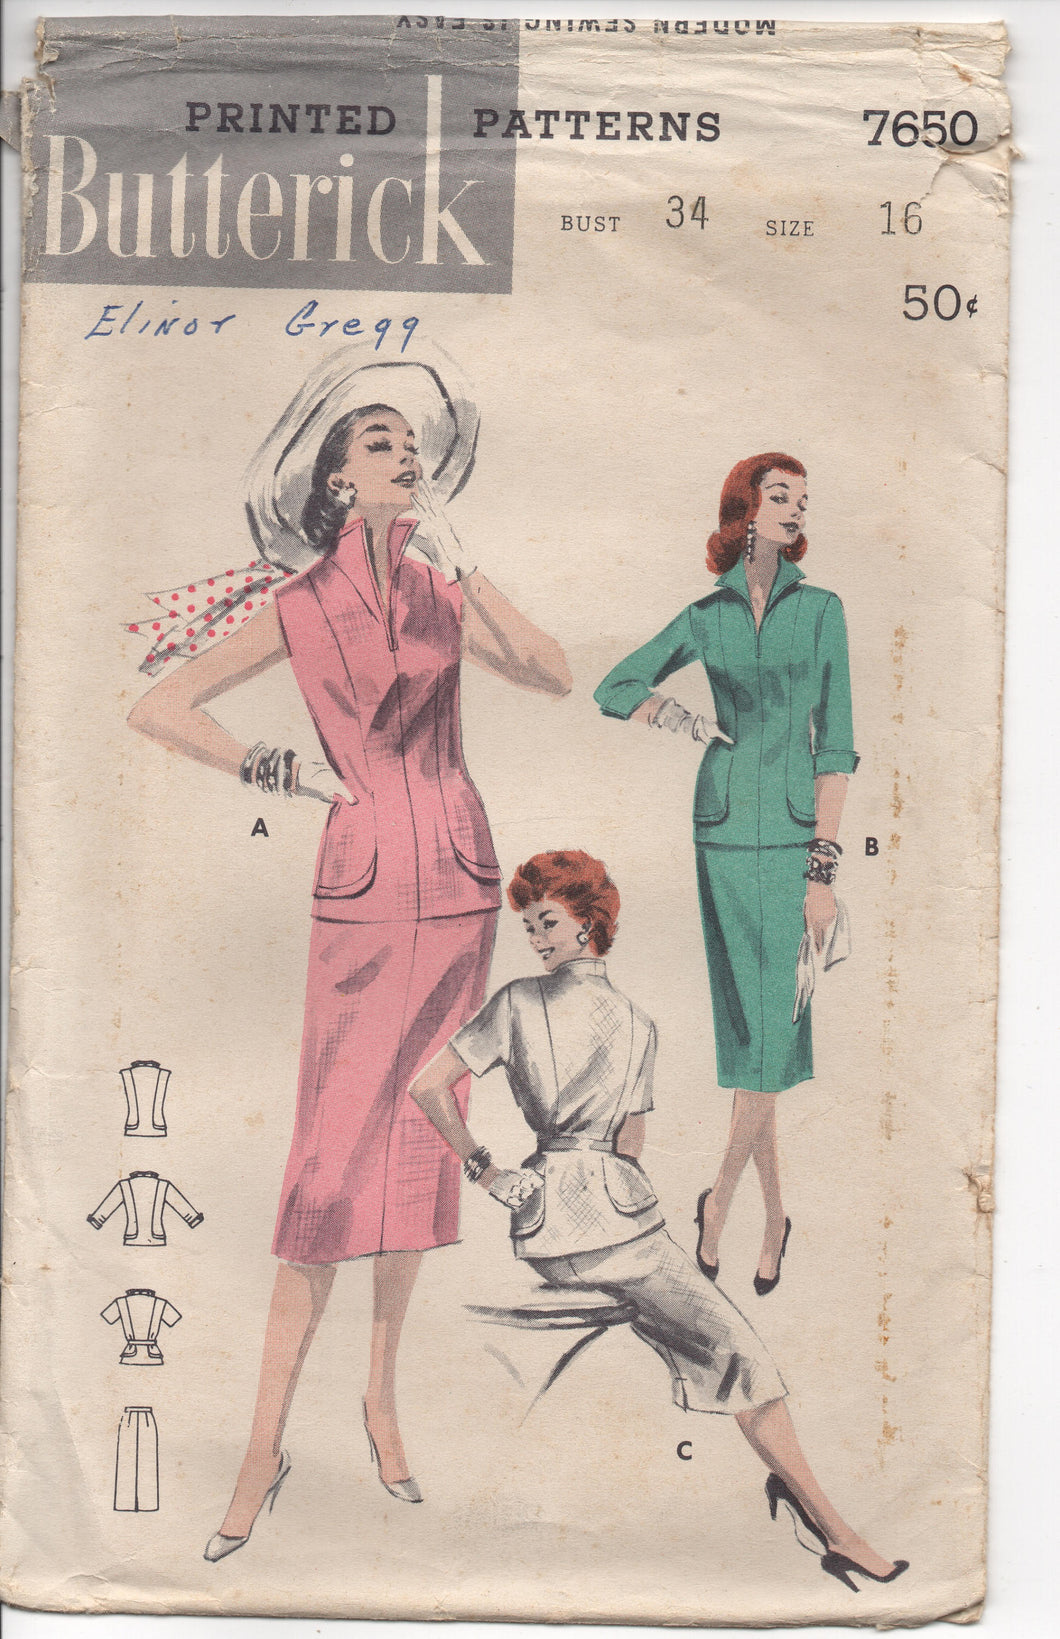 1950's Butterick Two Piece Dress with Elongated lines and Stand-up Collar Pattern - Bust 34